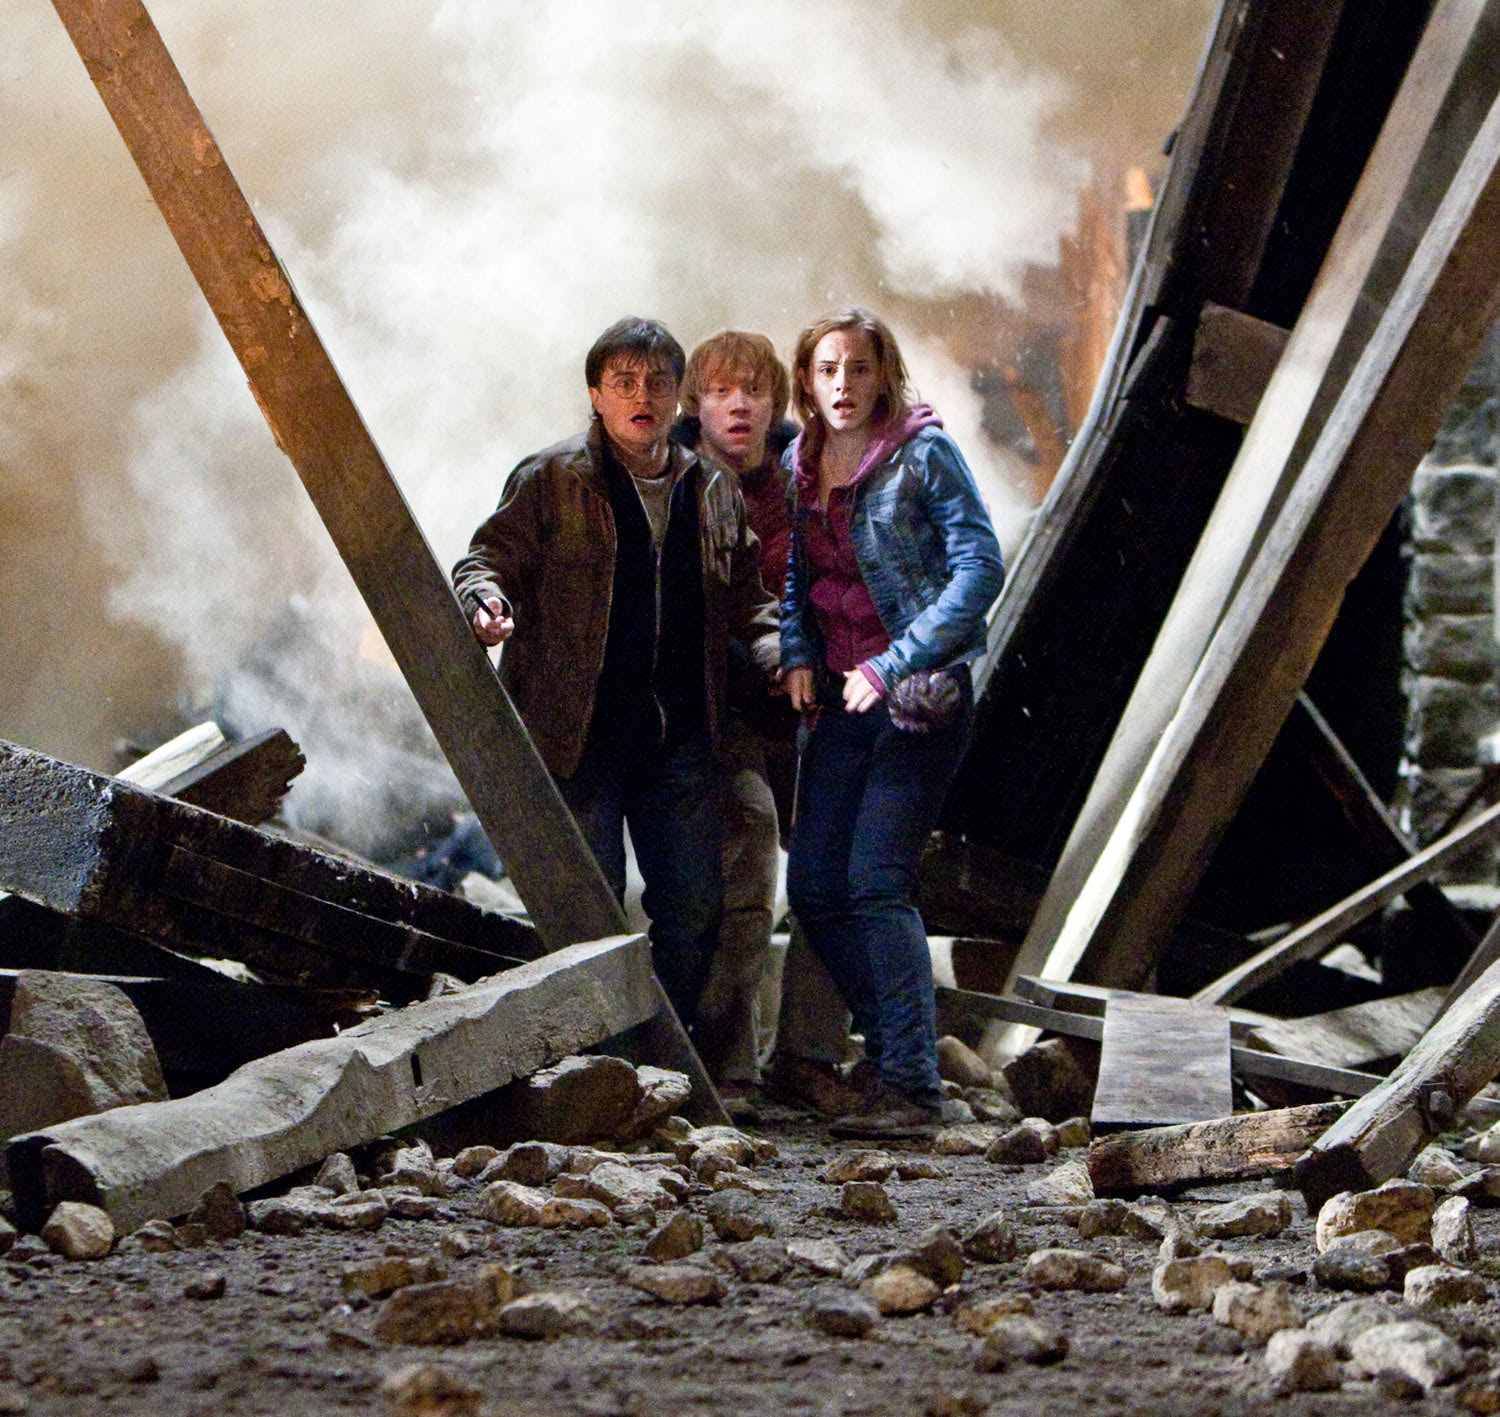 Harry, Ron and Hermione watch in horror